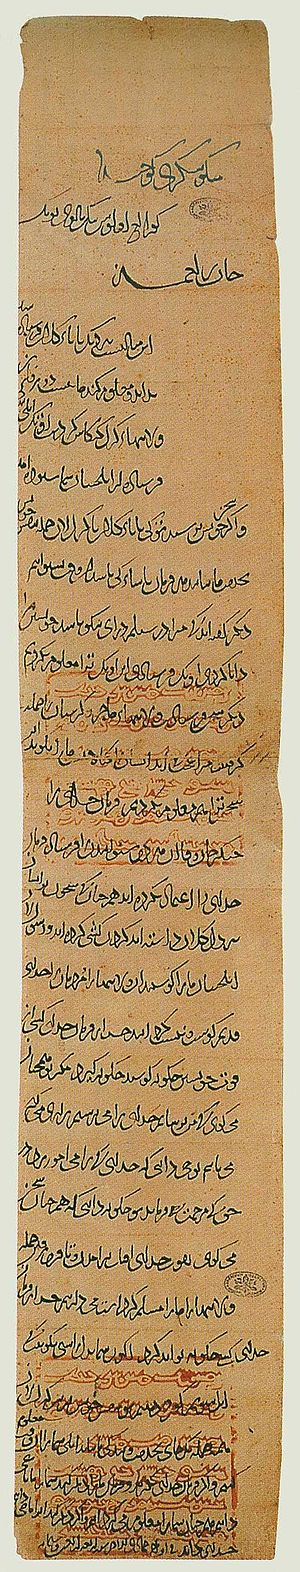 Franco-Mongol alliance - 1246 letter from Güyük to Pope Innocent IV, written in Persian